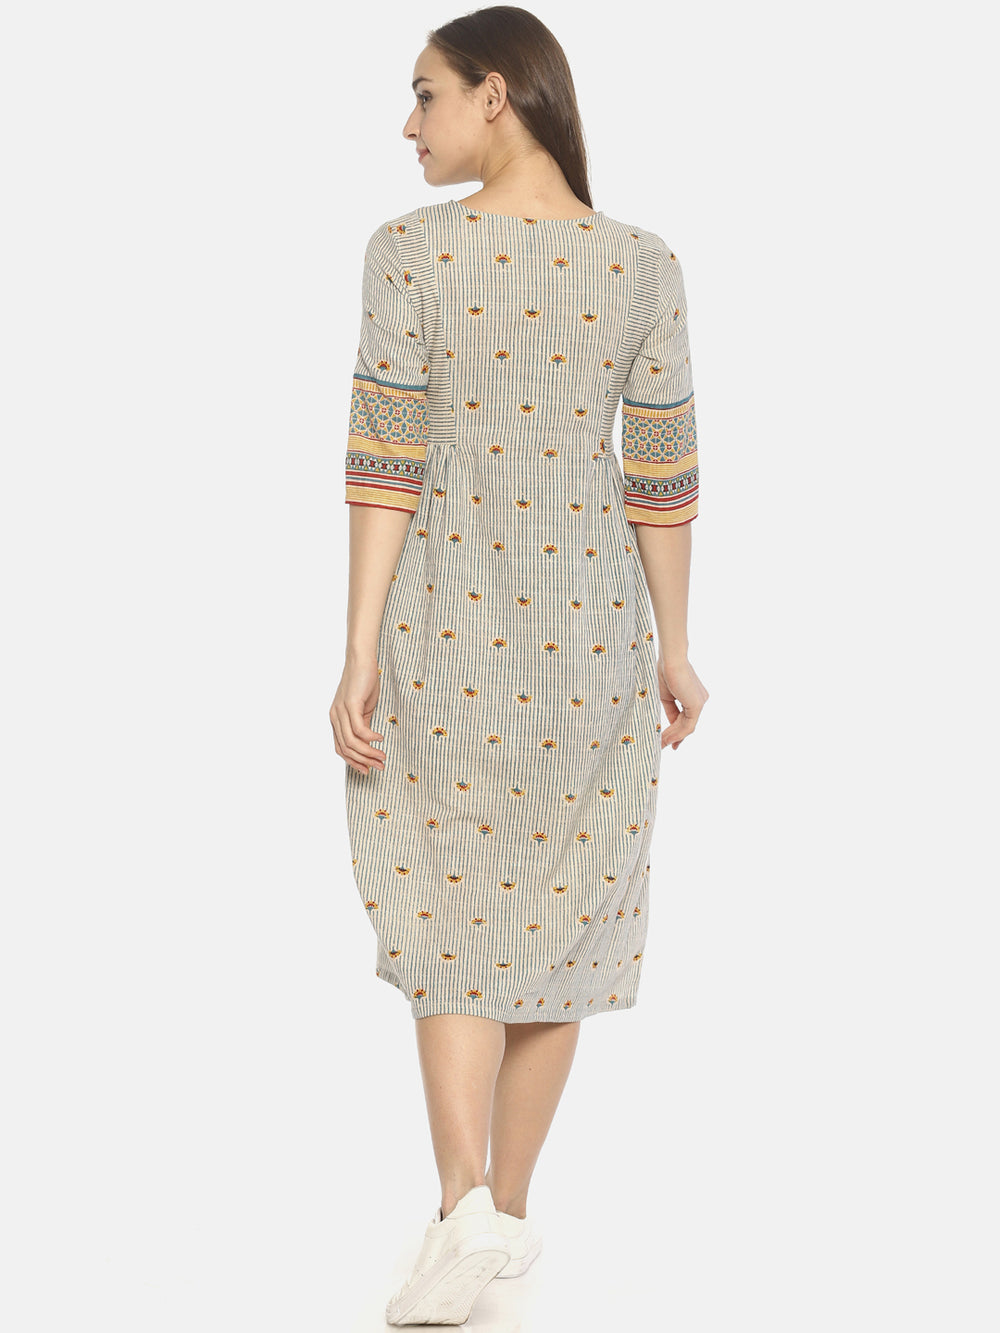 Off White Block Printed Front Open Dress | Untung